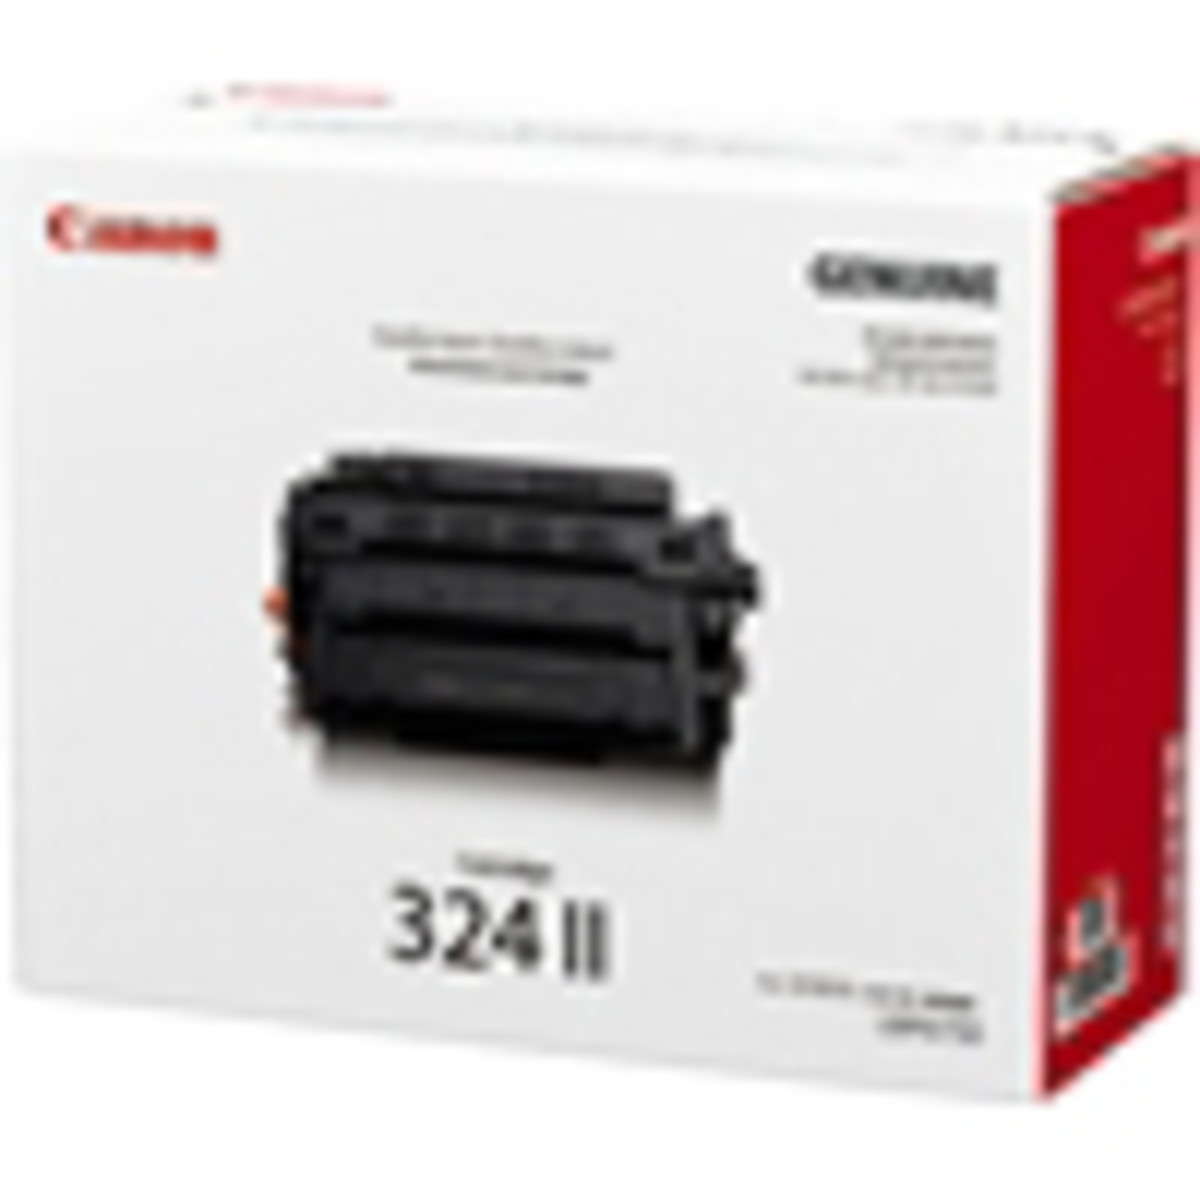 Canon CART-324II Black Toner Cartridge - High Yield